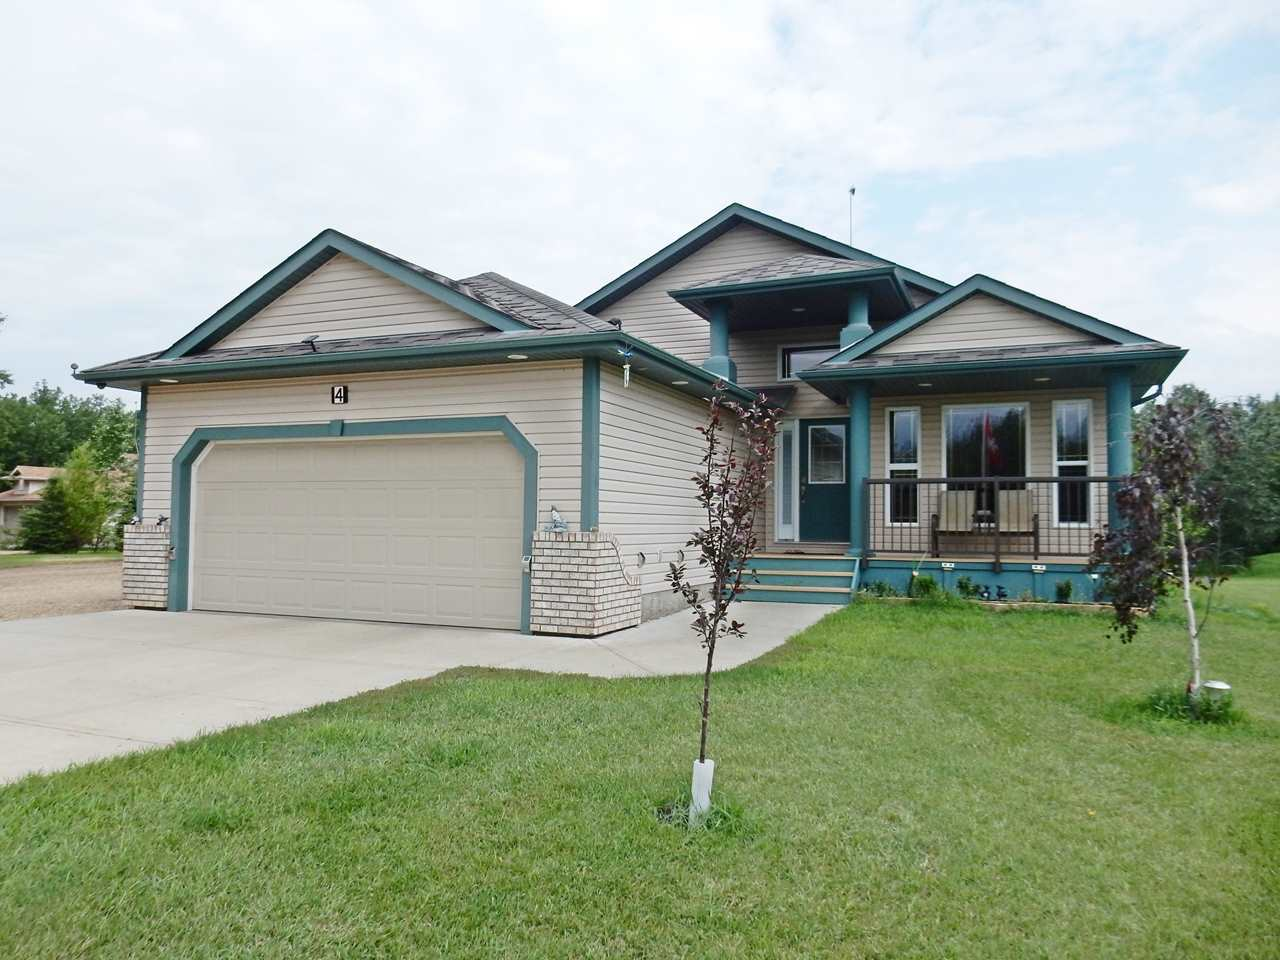 Photo 3: 4 Lost Point Lake Drive: Rural Sturgeon County House for sale : MLS(r) # E4049296